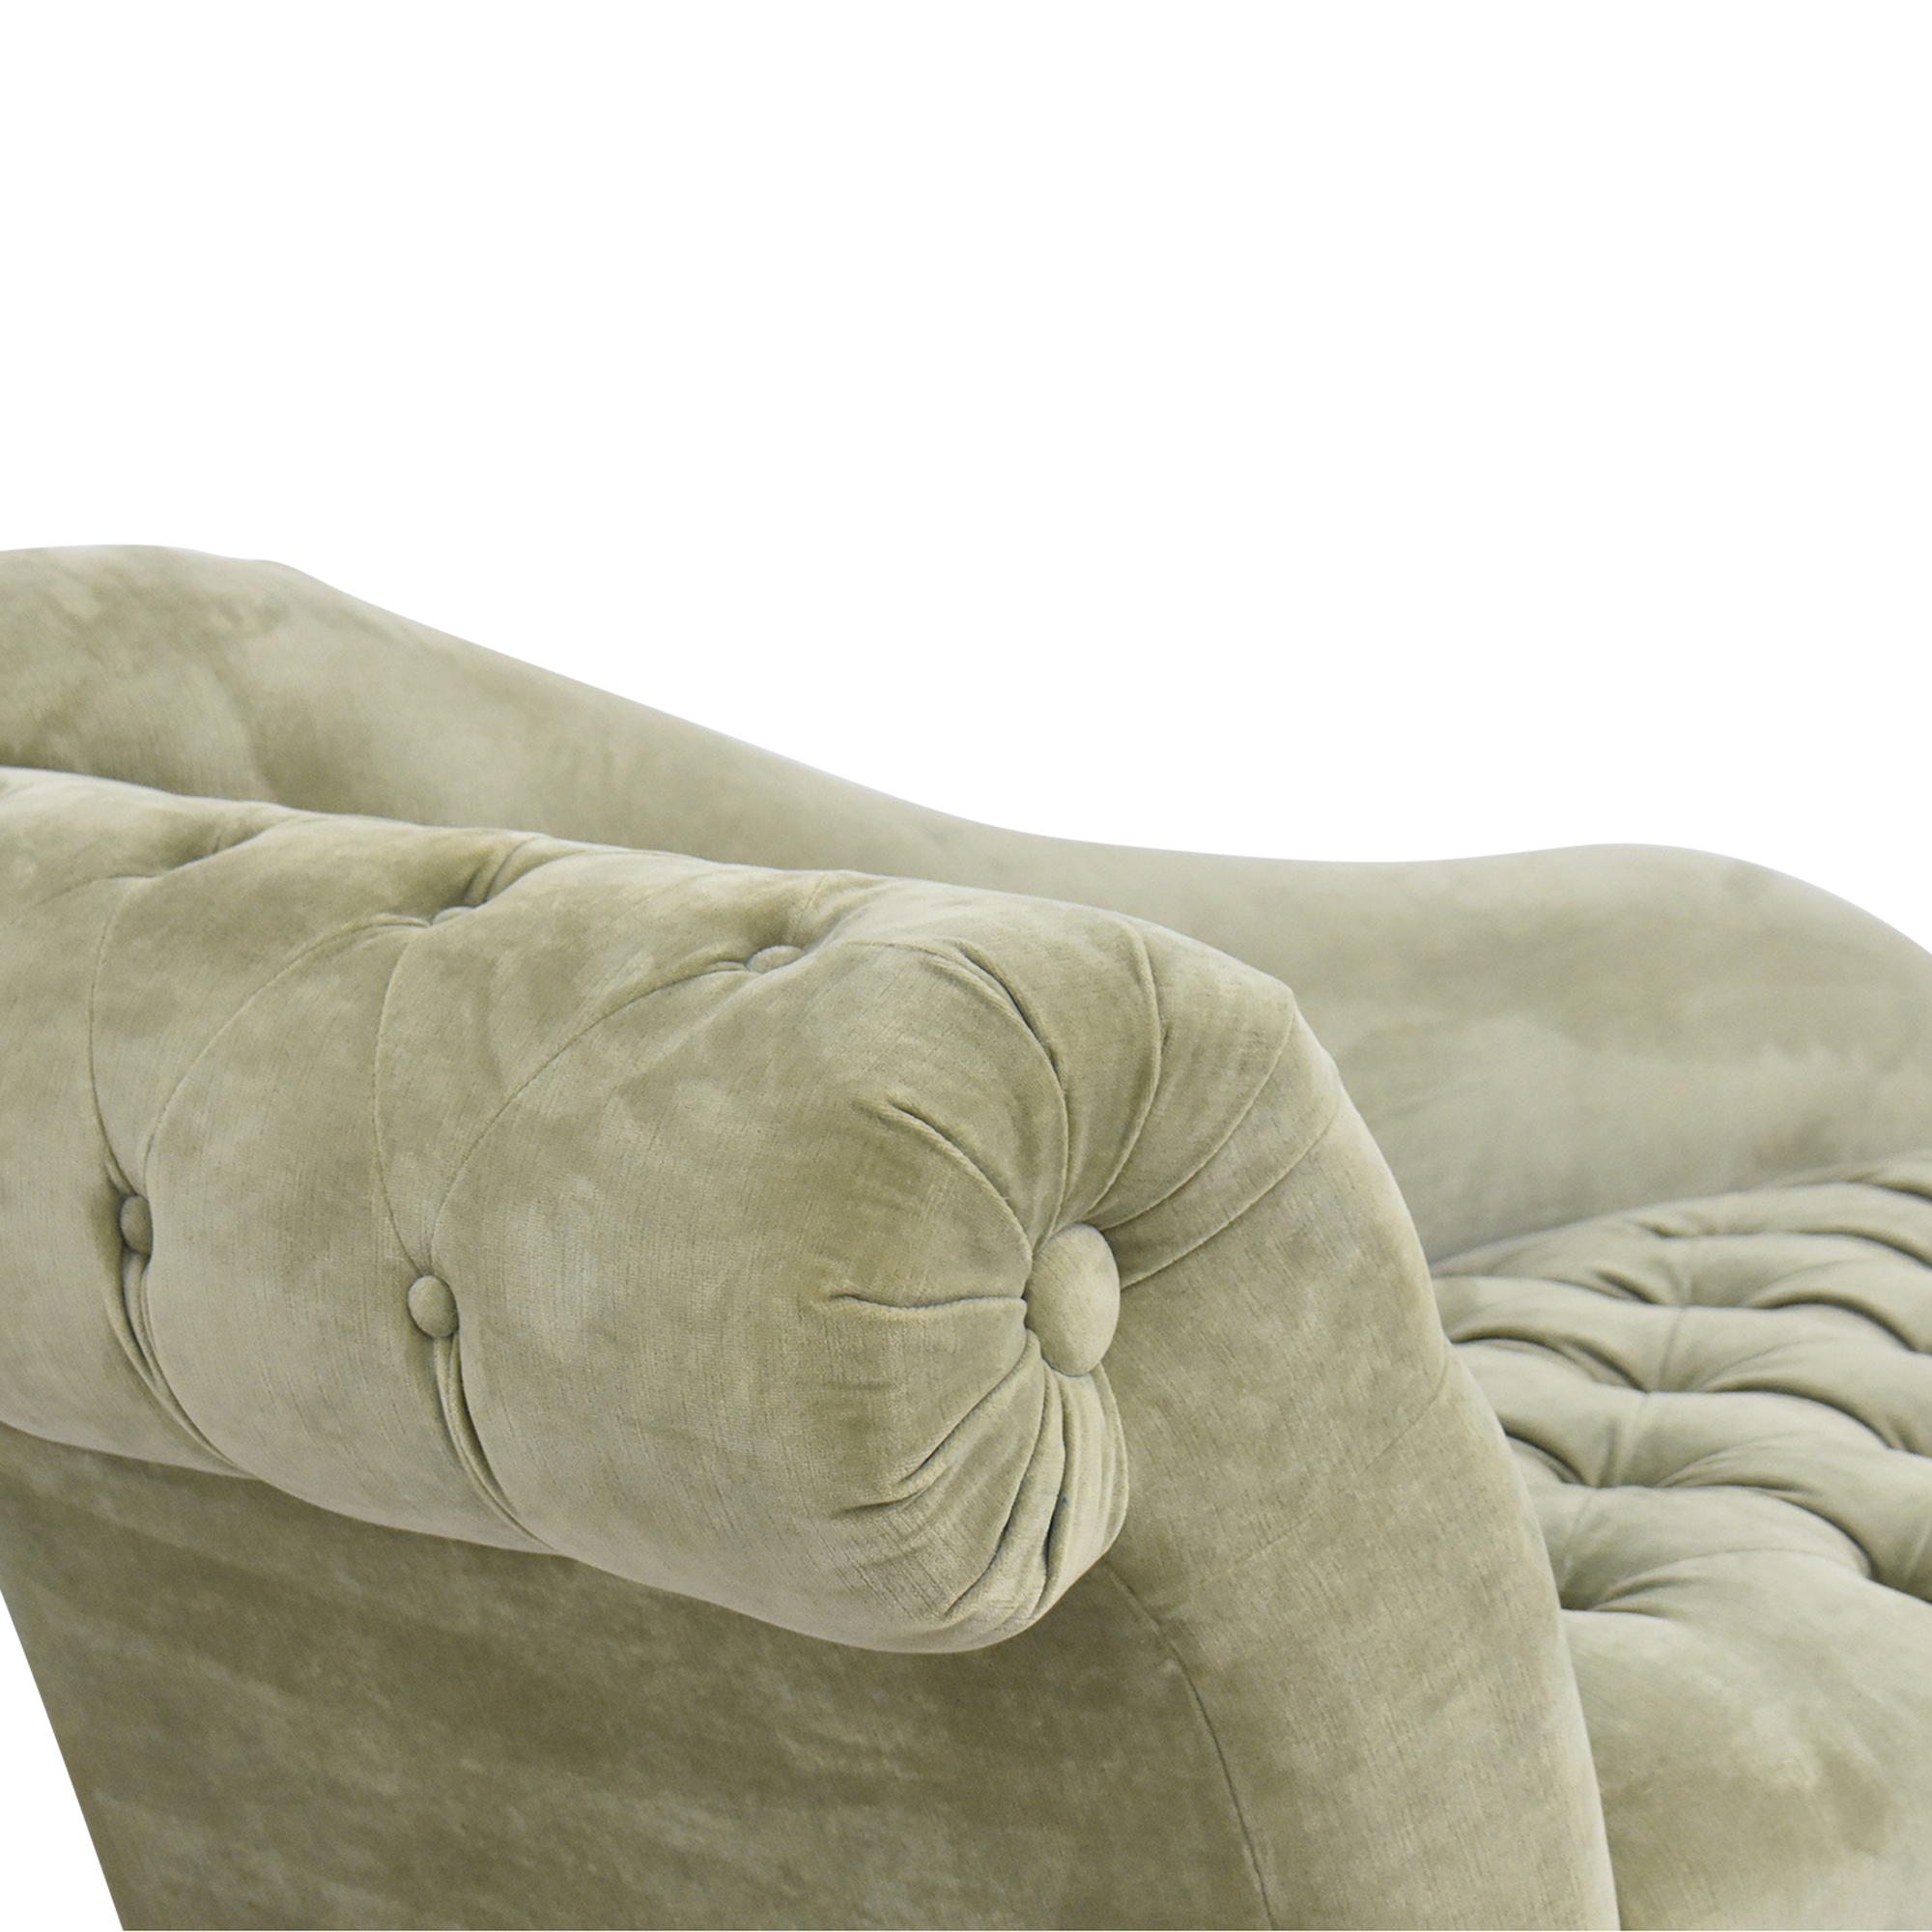 Domain Home Chaise Lounge / Chaises